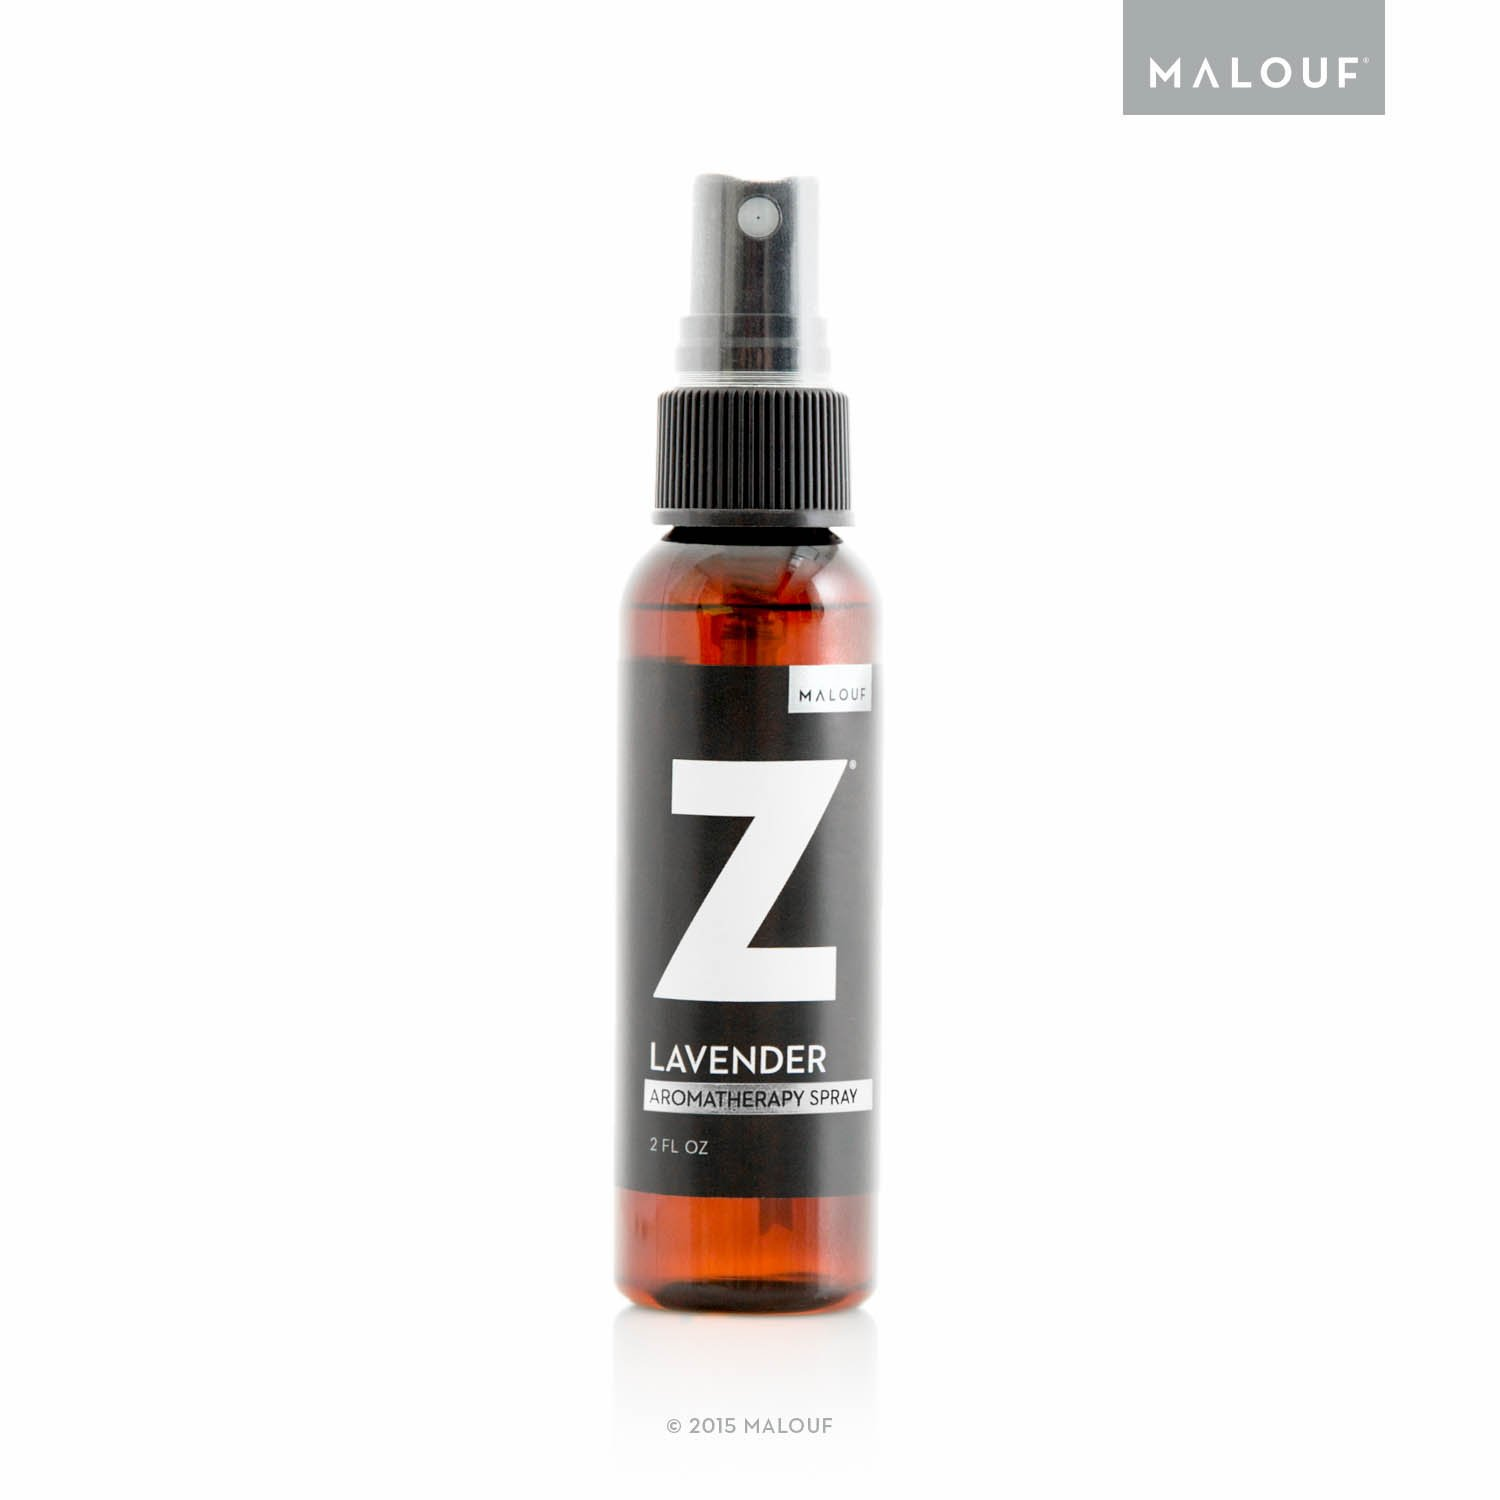 MALOUF All All Natural Z Aromatherapy Mist Made with Real Lavender Oil, 2 Ounce Spray Bottle, by MALOUF